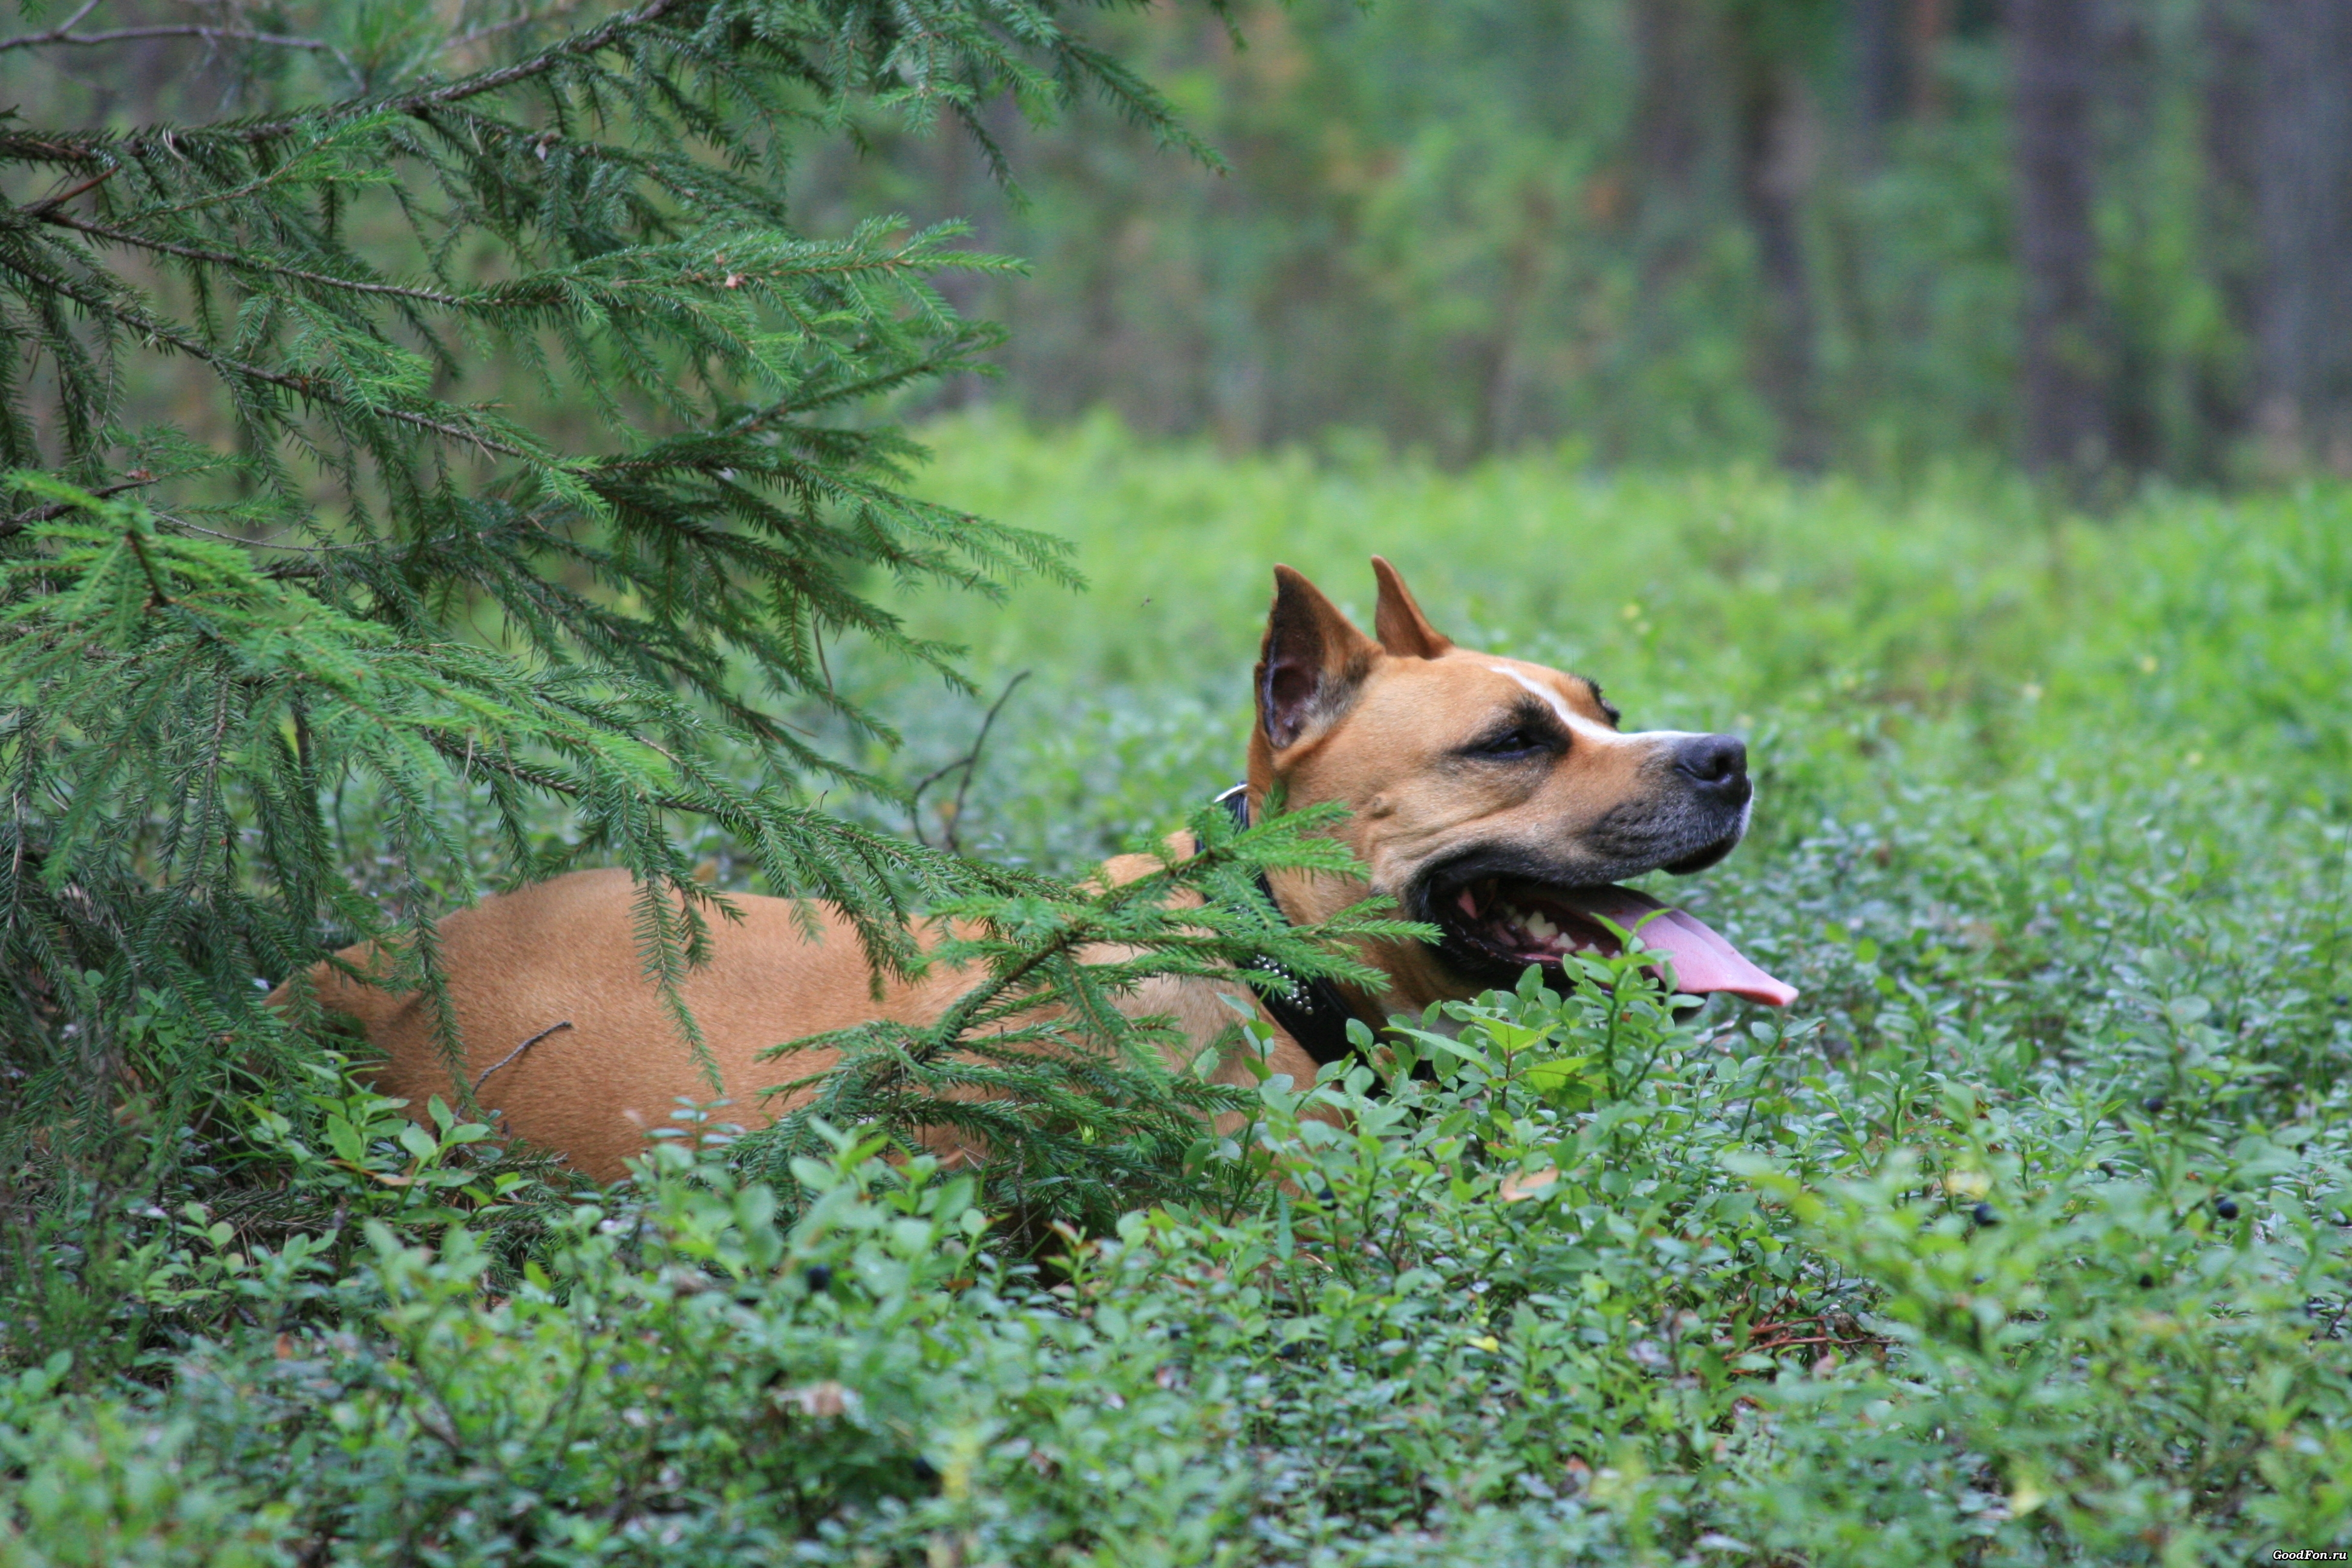 149680 download wallpaper Animals, Dog, Staffordshire Terrier, Lies, Forest, Spruce, Fir screensavers and pictures for free